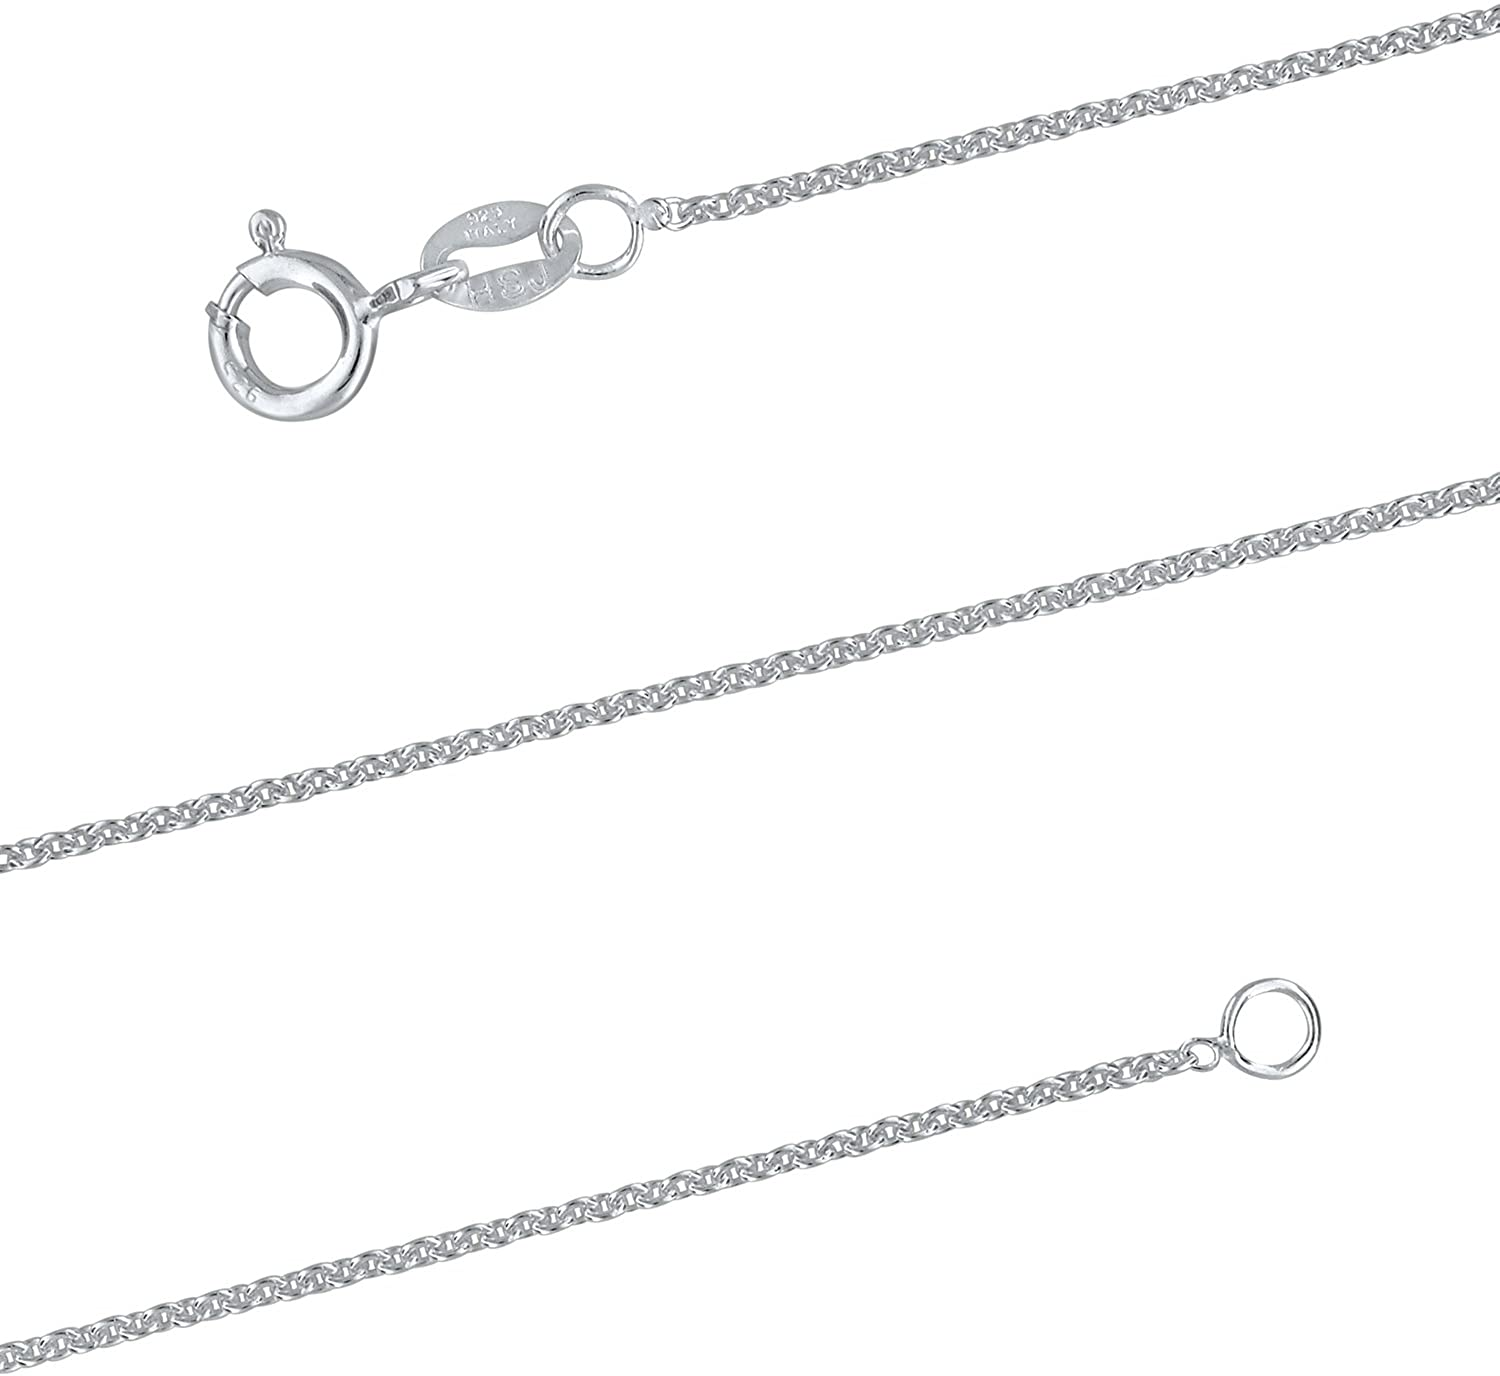 Sterling Silver 1.3mm Cable Chain Necklace Solid Italian Nickel-Free 15-24 Inch